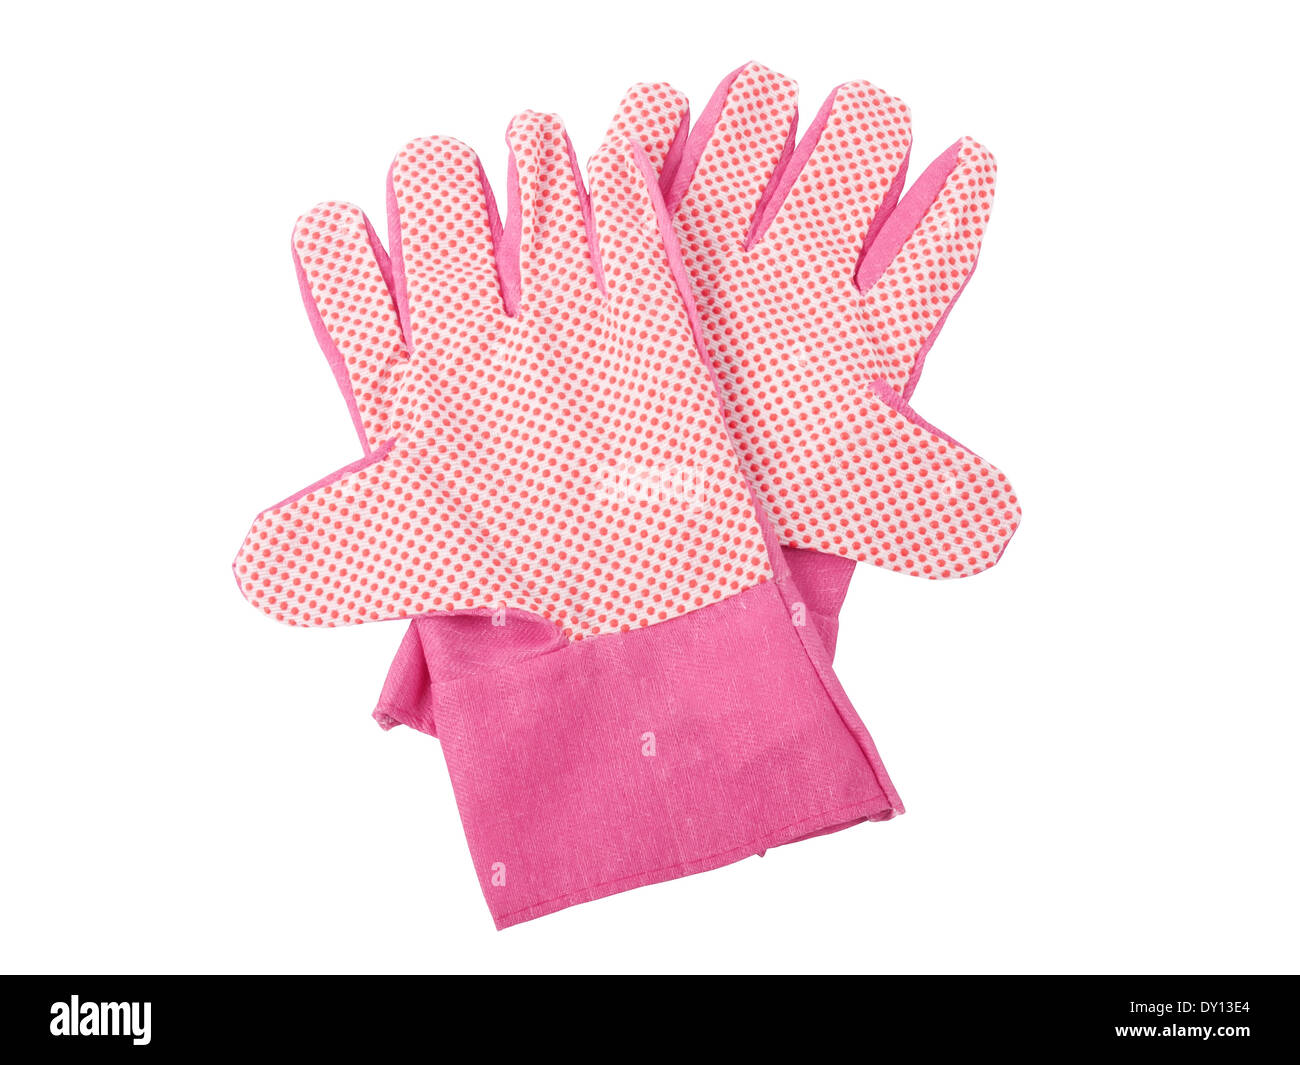 pair of gardening gloves isolated on white background - Stock Image